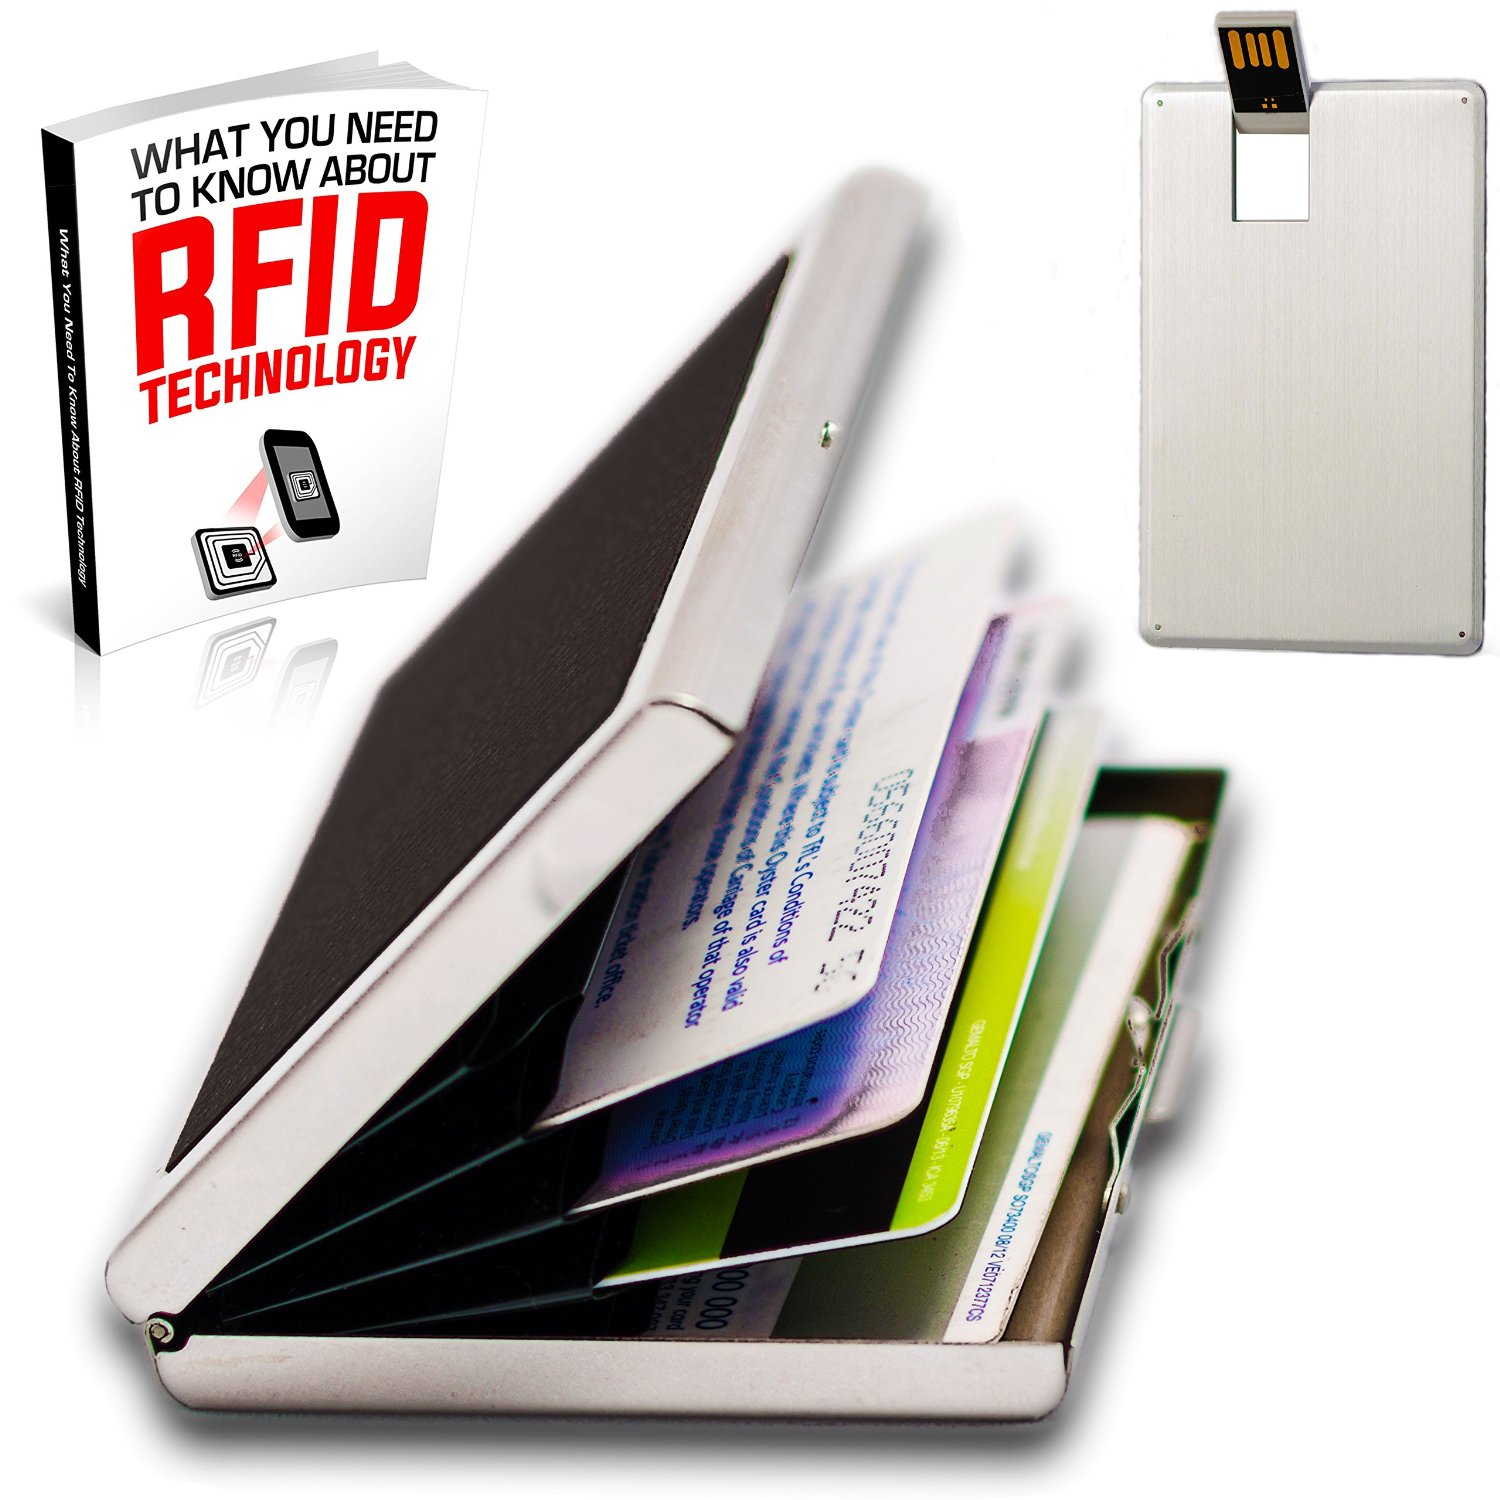 Premium RFID Blocking wallet Credit Card Holder for men and women with 4gb Credit Card USB Flash Drive Free Gift for a limited time only.